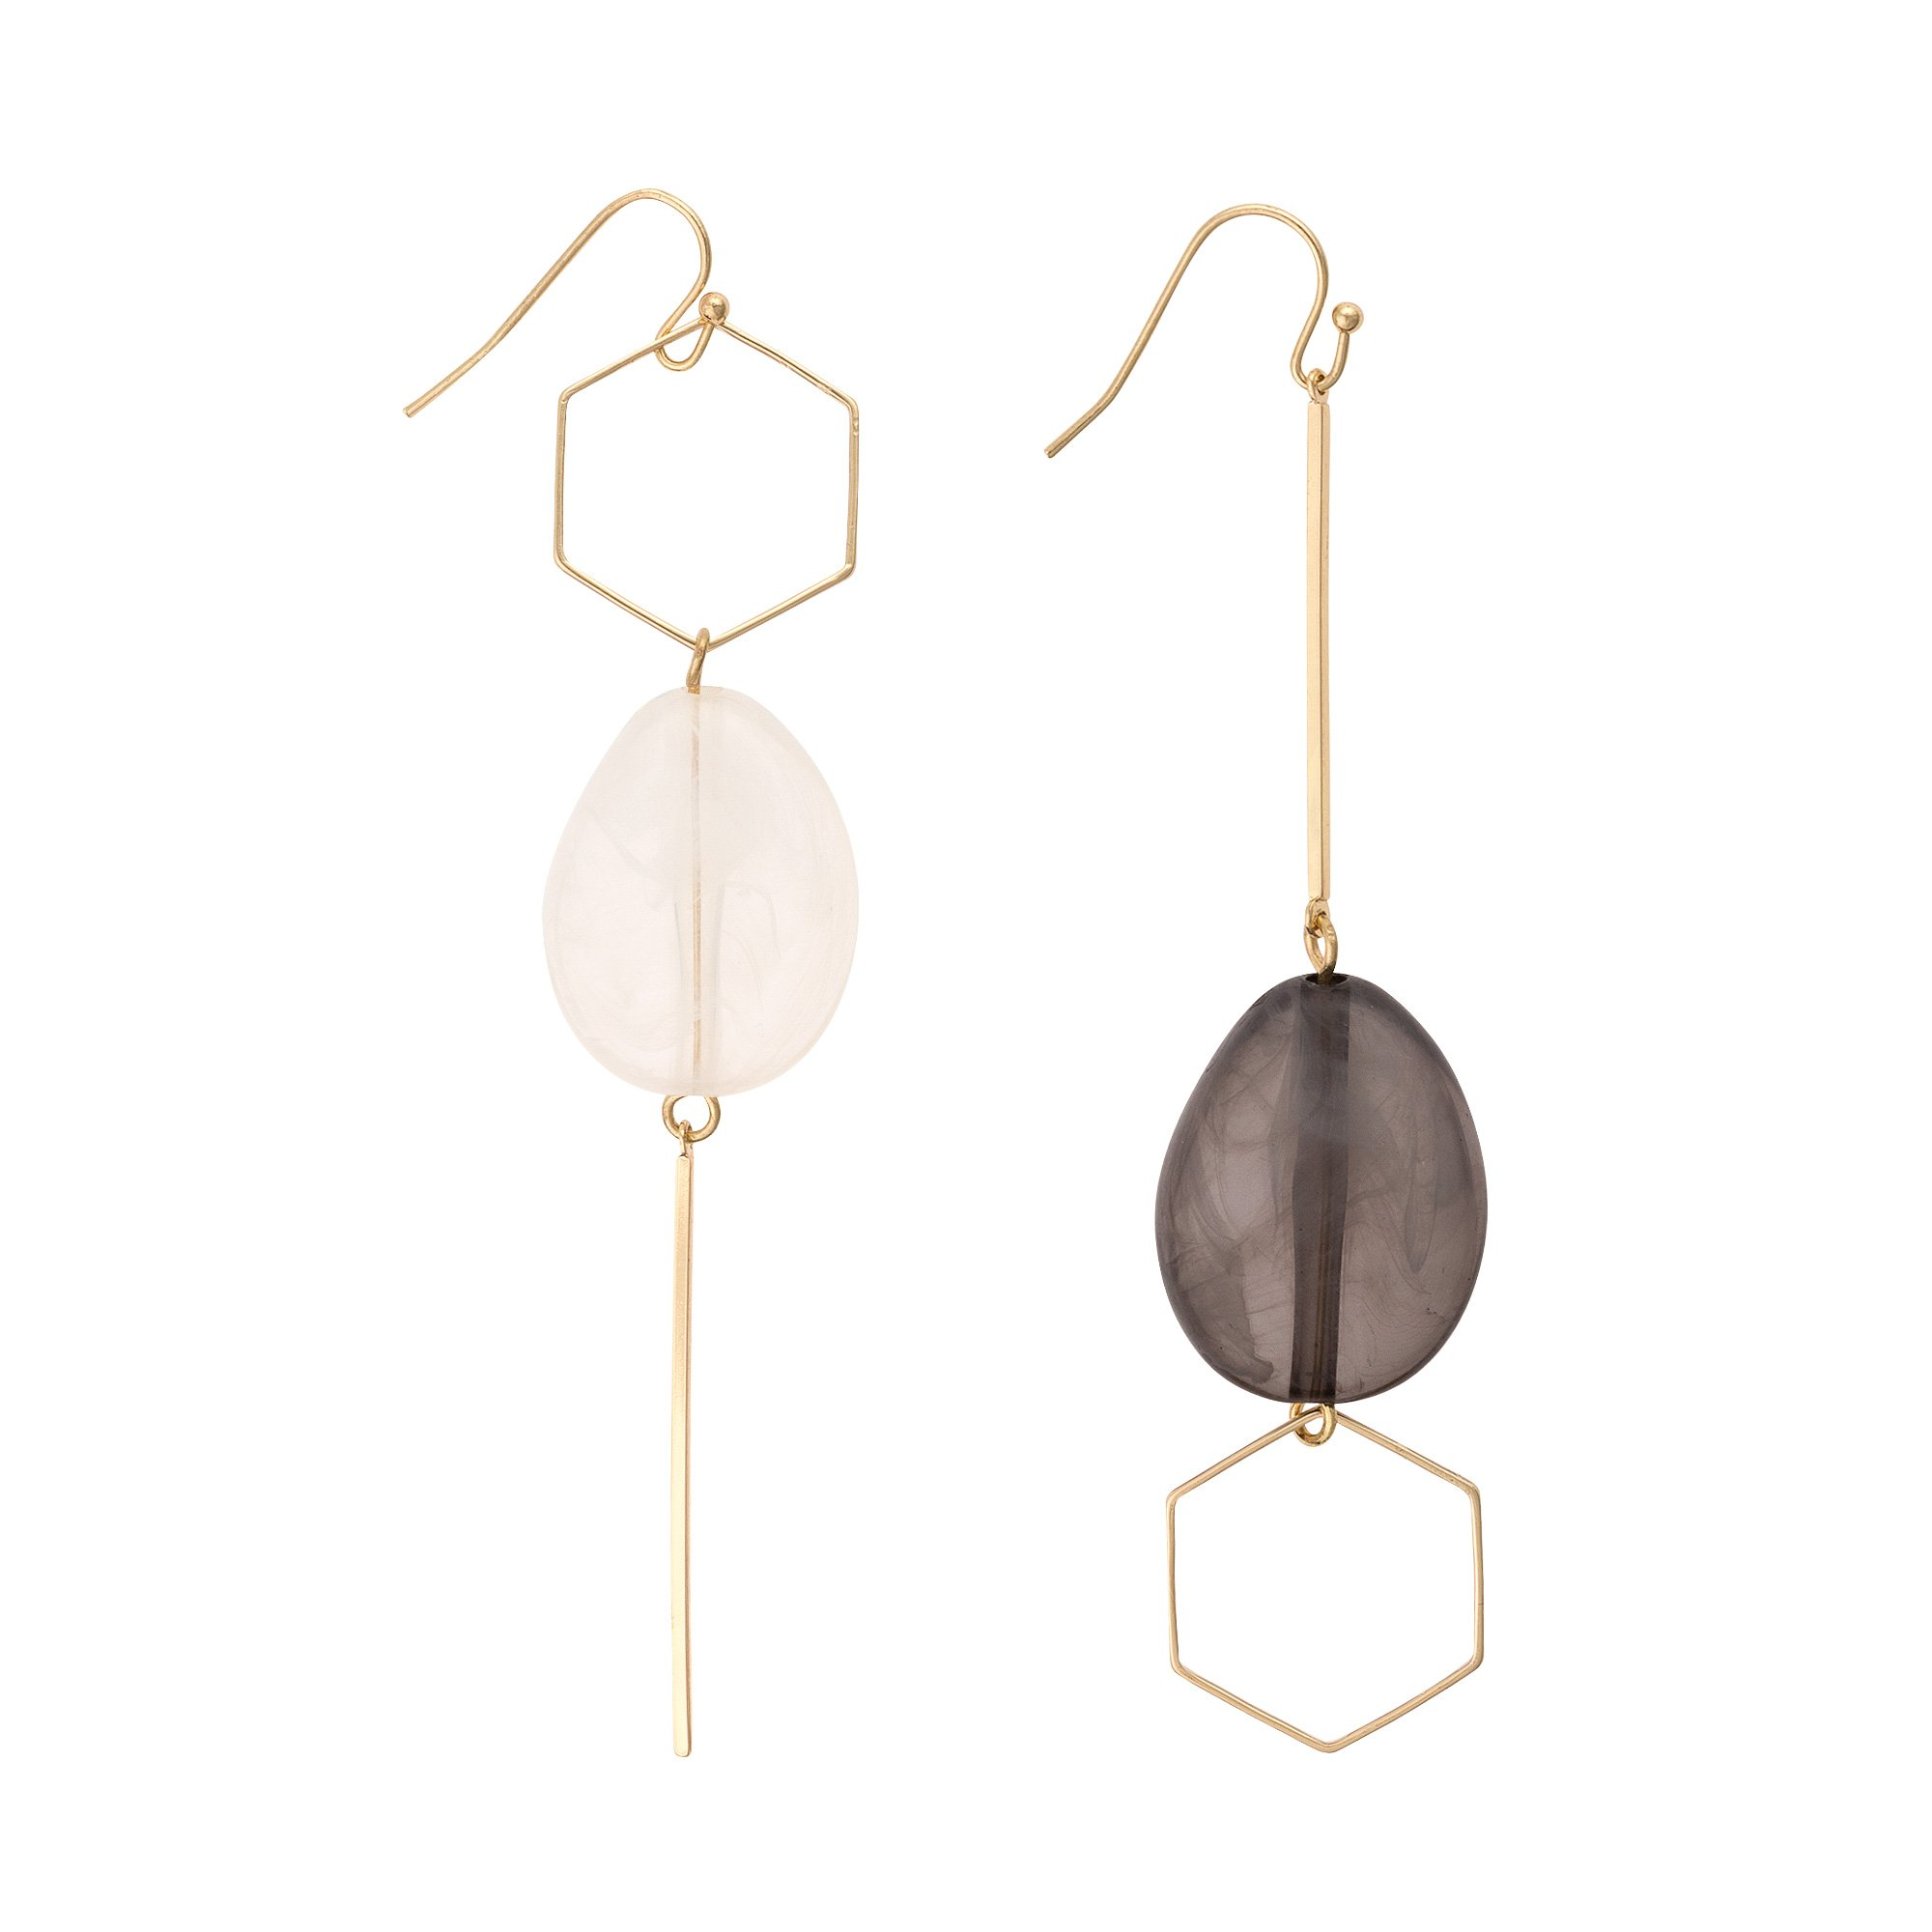 set assorted load earrings star your look to great lobes style up mix that match and monki moon earring delicate asymmetric